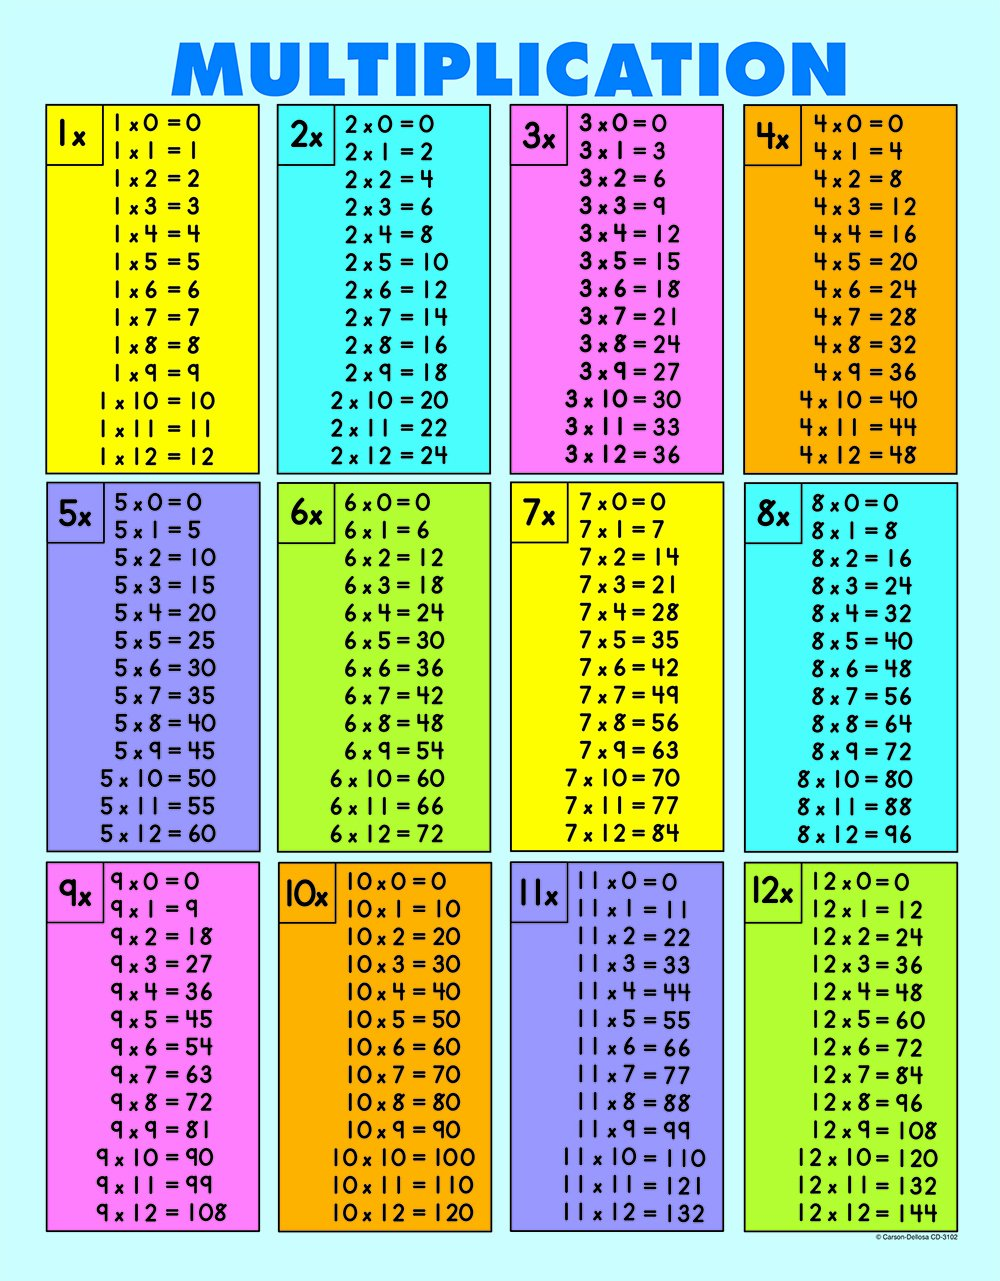 Multiplication facts through 12 popflyboys for Multiplication table de 4